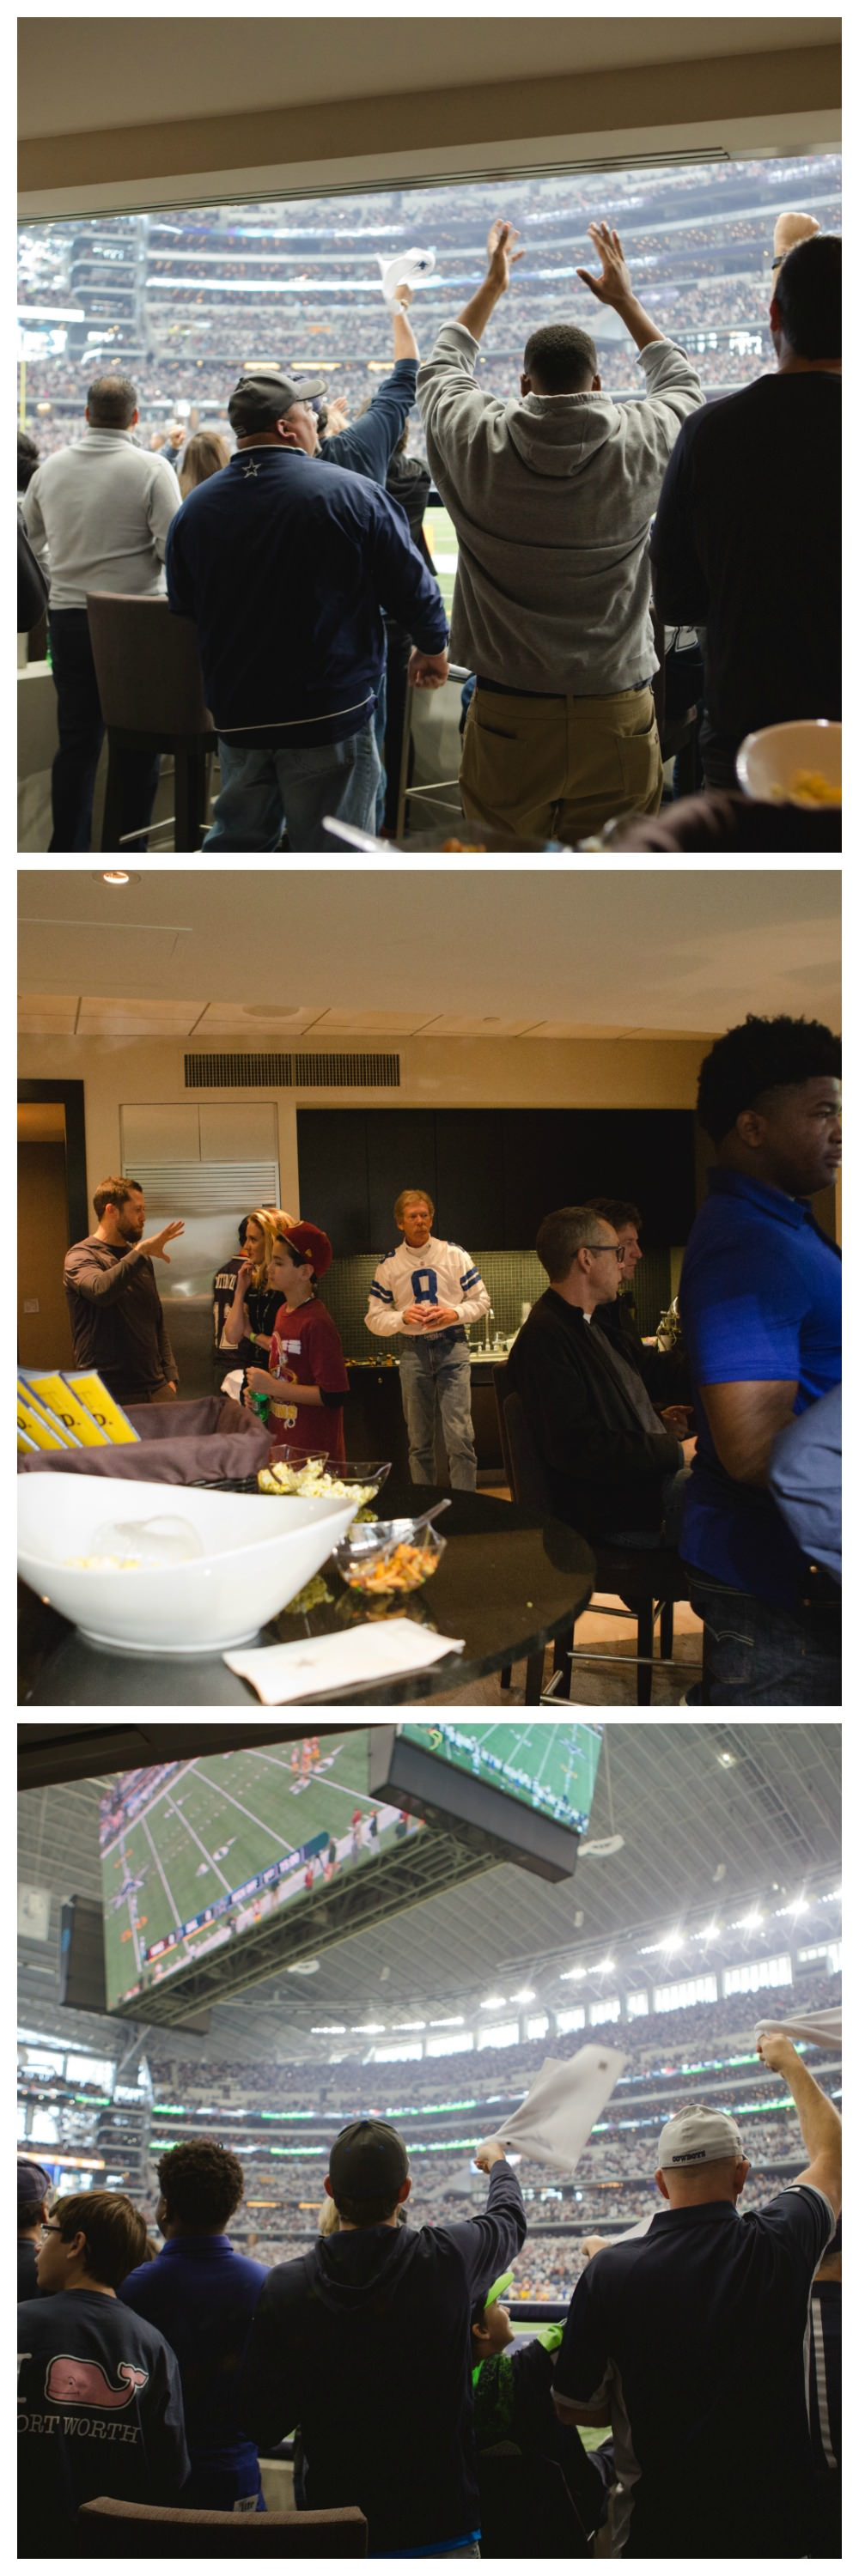 SuiteHop gives you an exclusive look inside AT&T Stadium's luxury seating with pictures of Dallas Cowboys Suites!